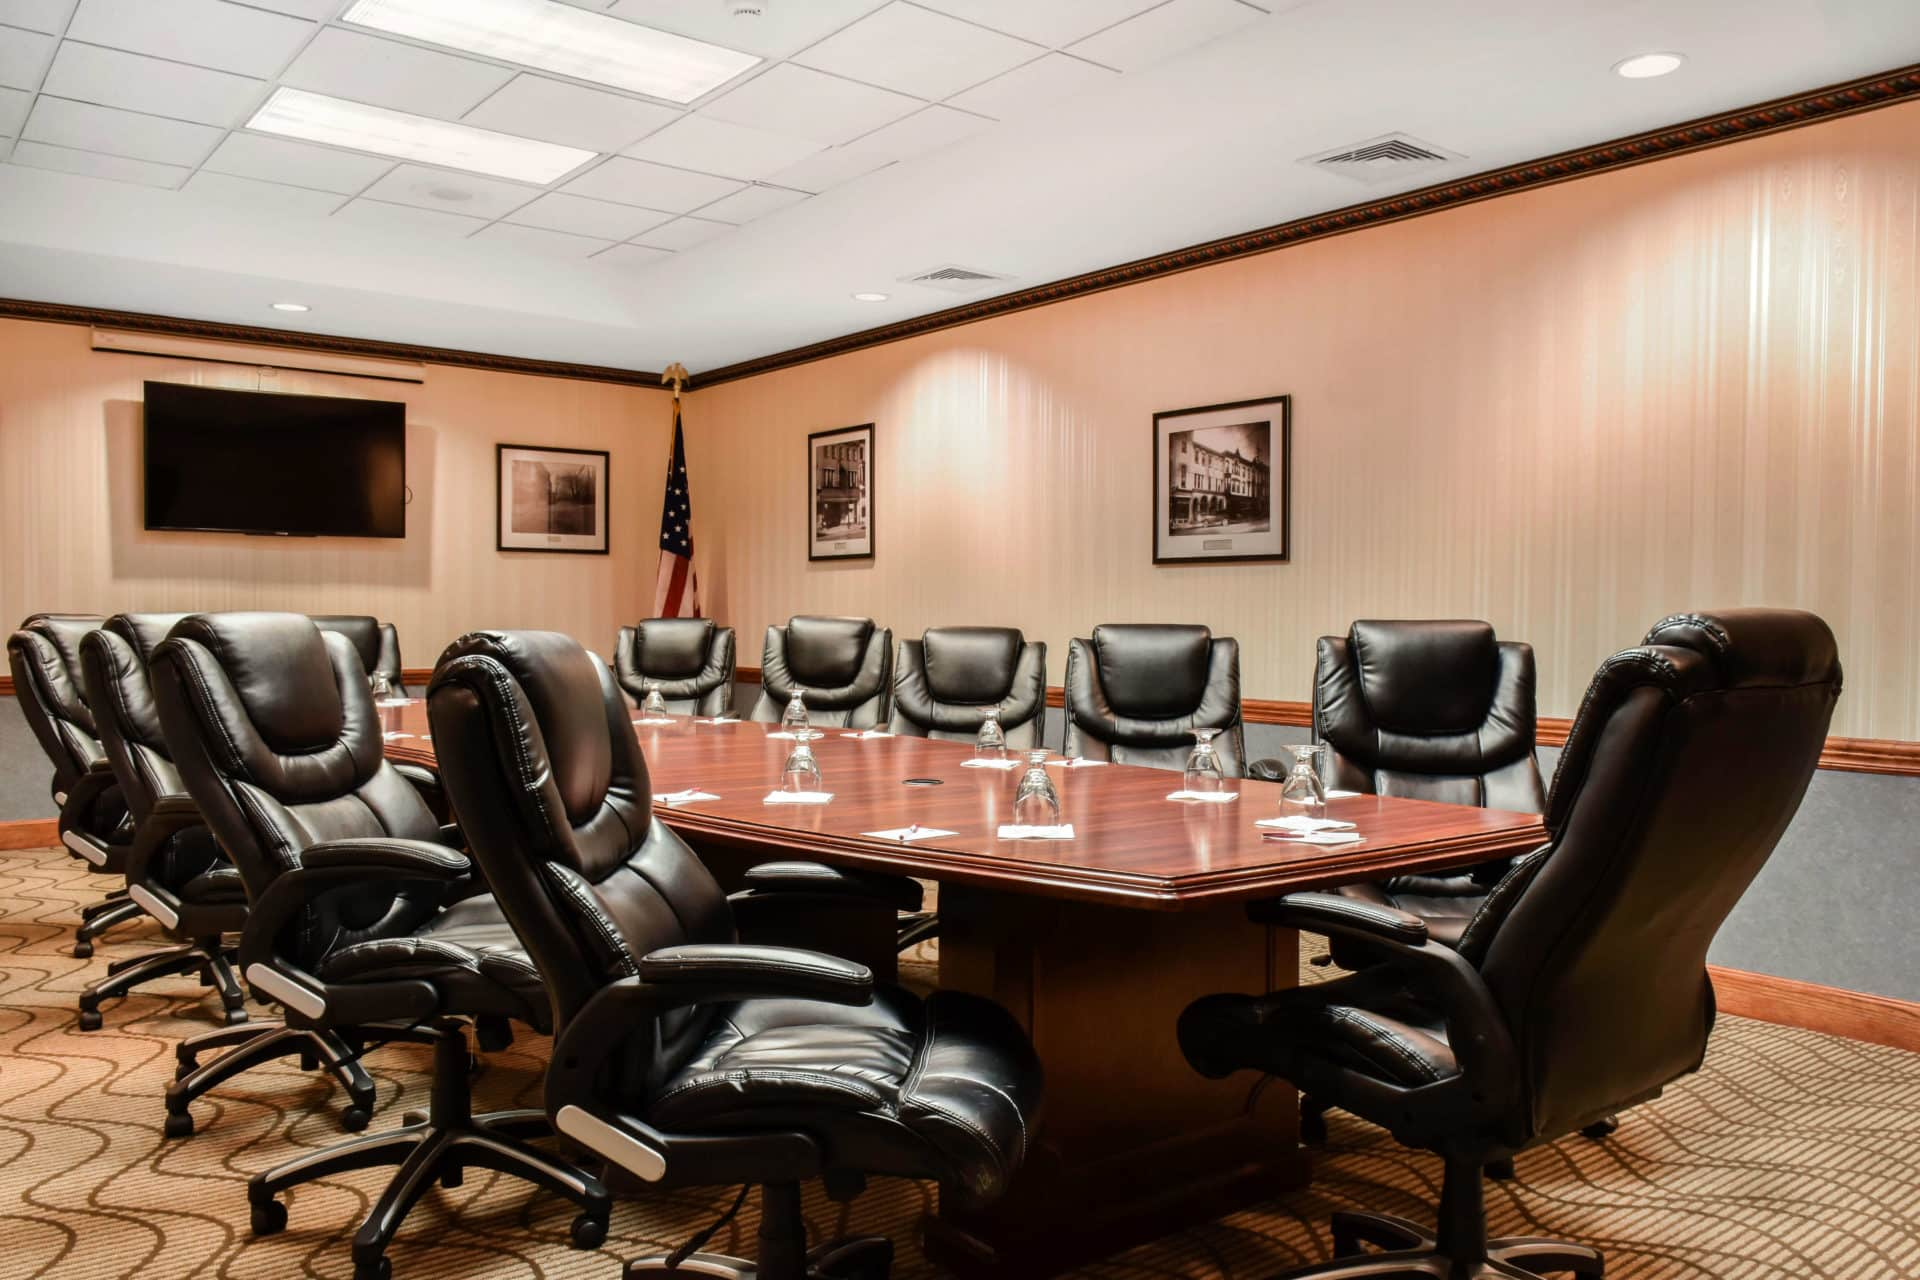 Comfort Suites Carlisle PA small room for meetings